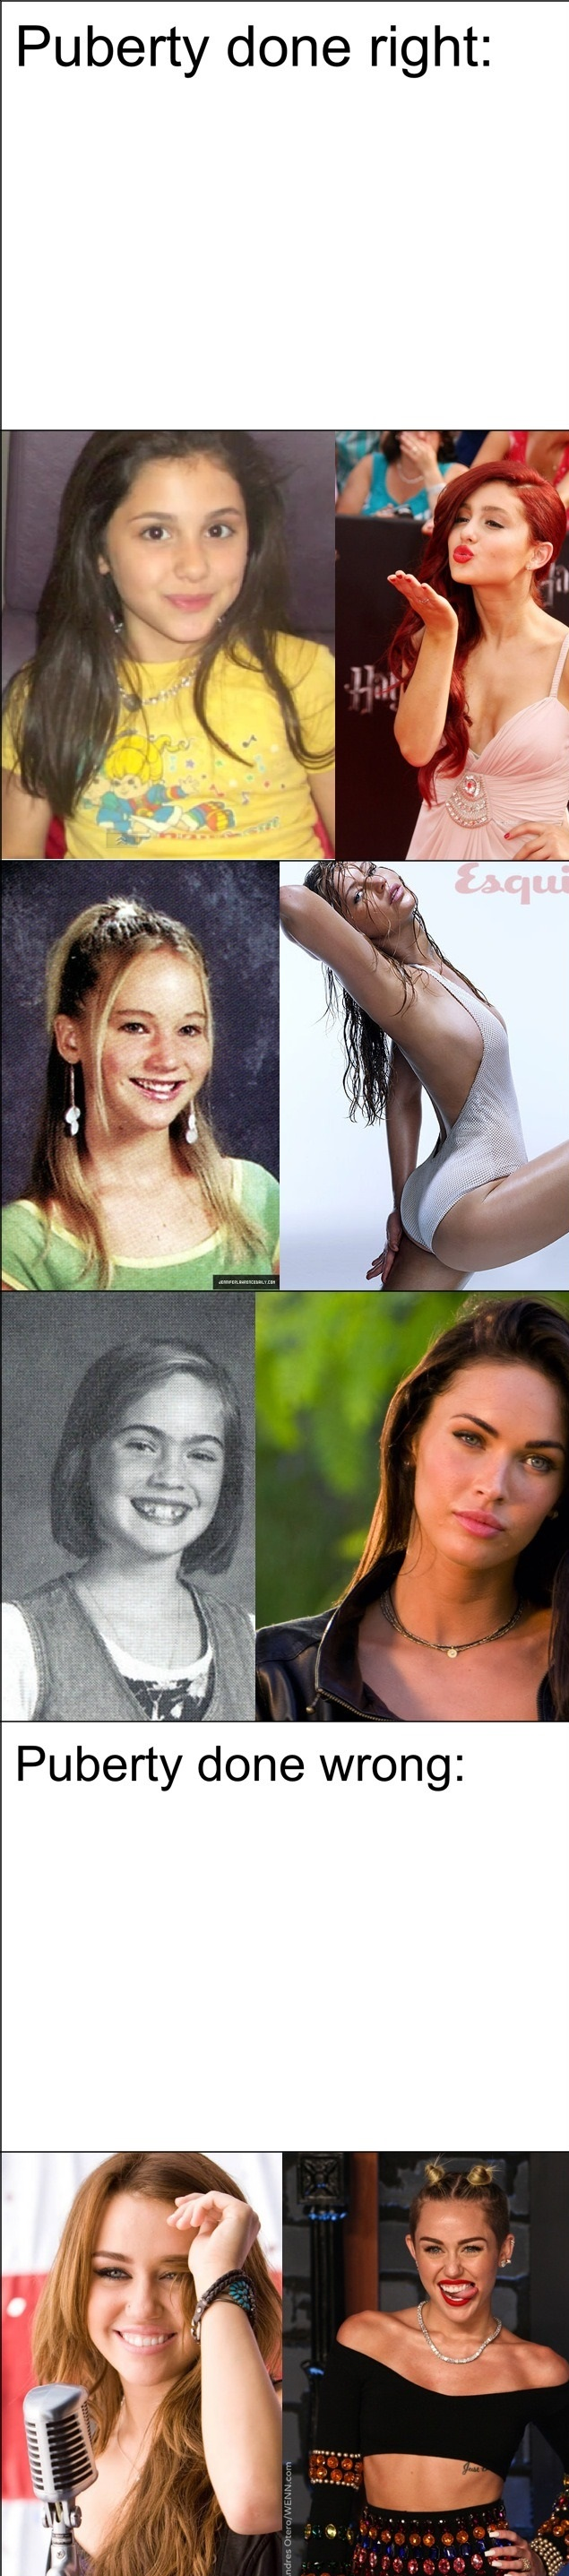 funny-picture-puberty-done-right